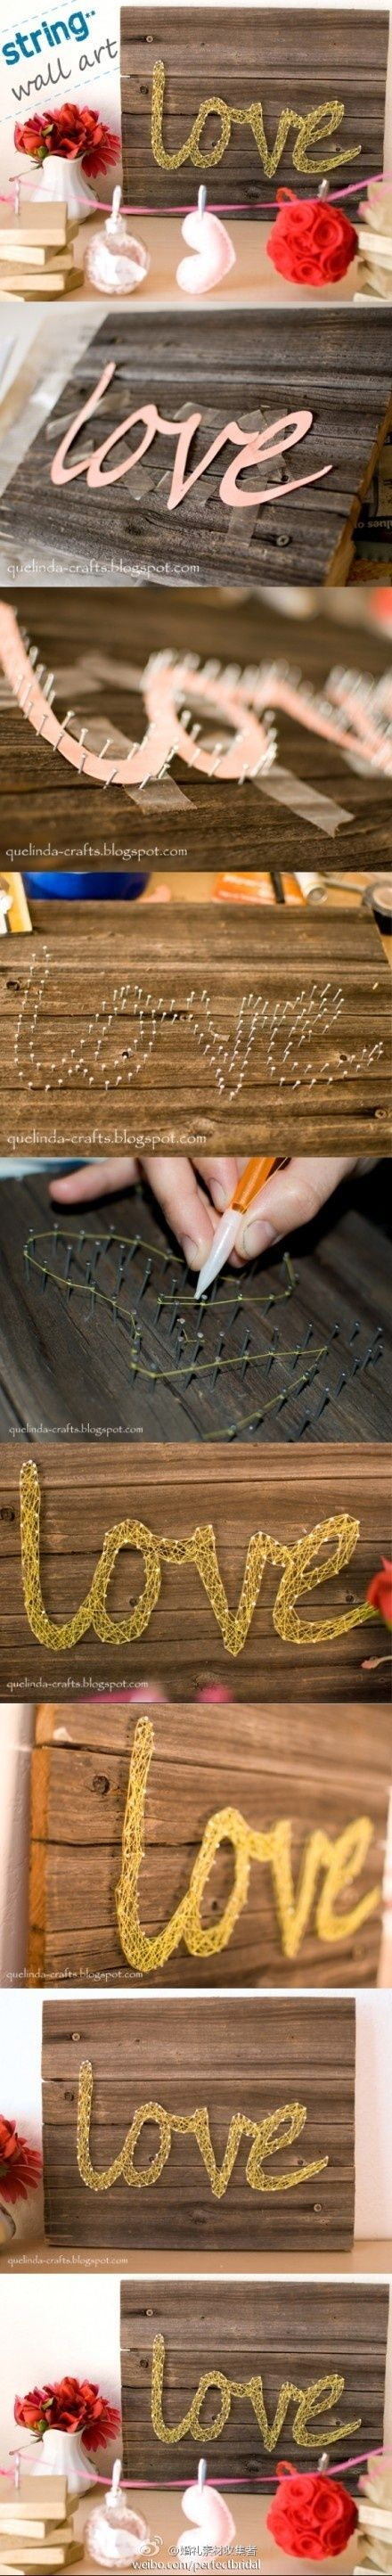 String art for the home! Cute idea